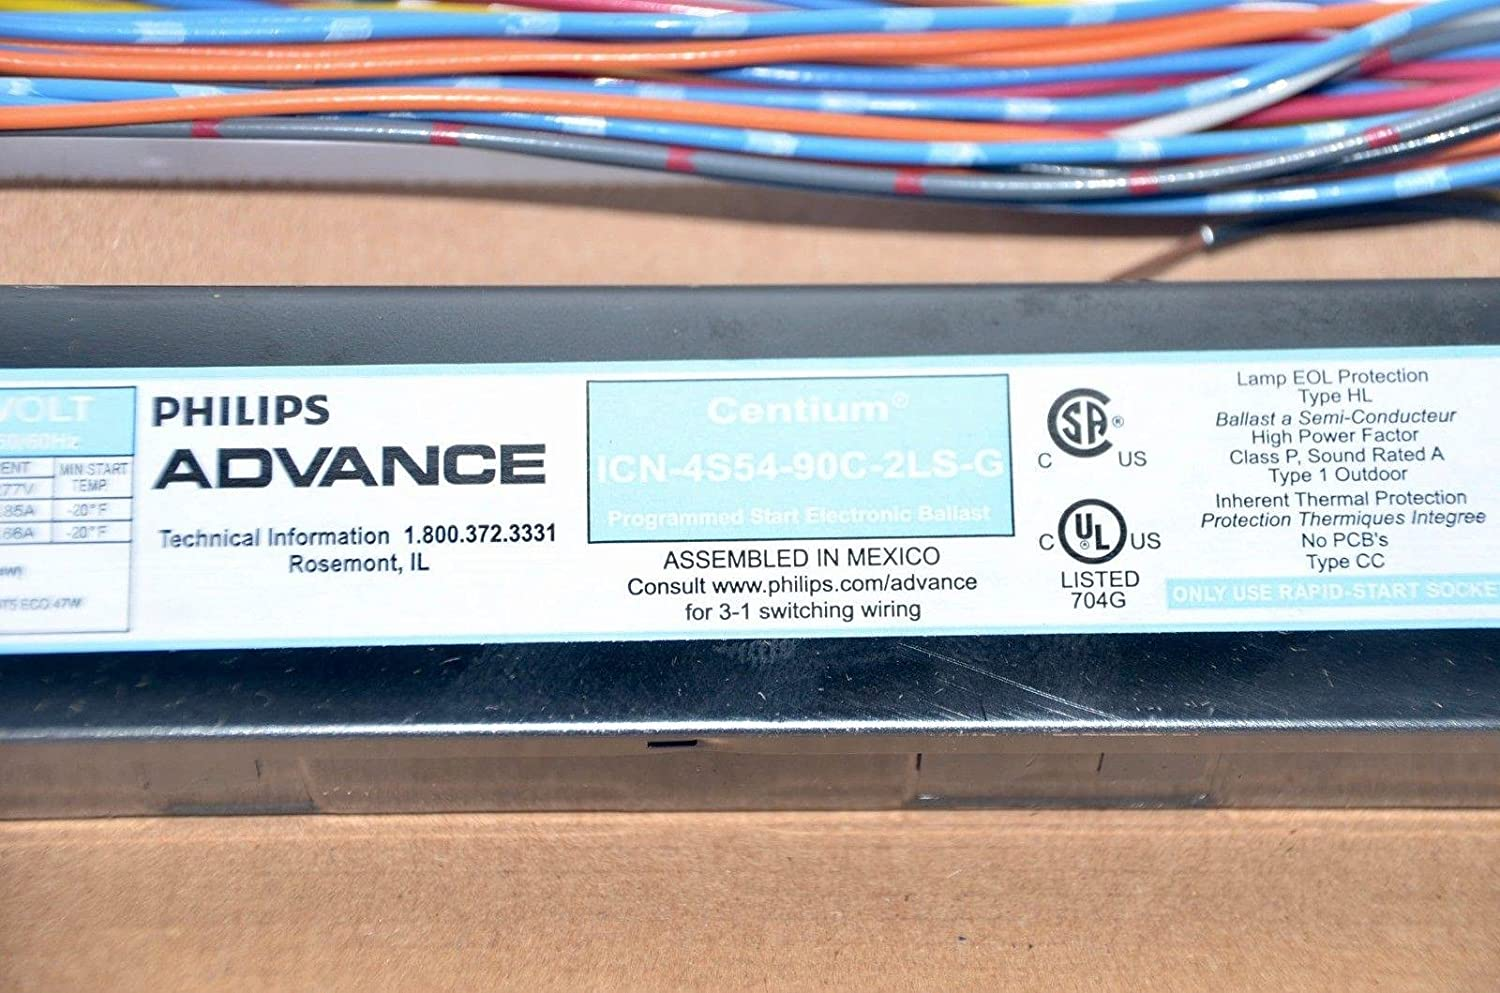 Philips Advance Icn4s5490c2lsg 4 Lamp T5 Ballast Wiring Fluorescent 54wt5 Ho 120 277v 20c To 90c Home Improvement